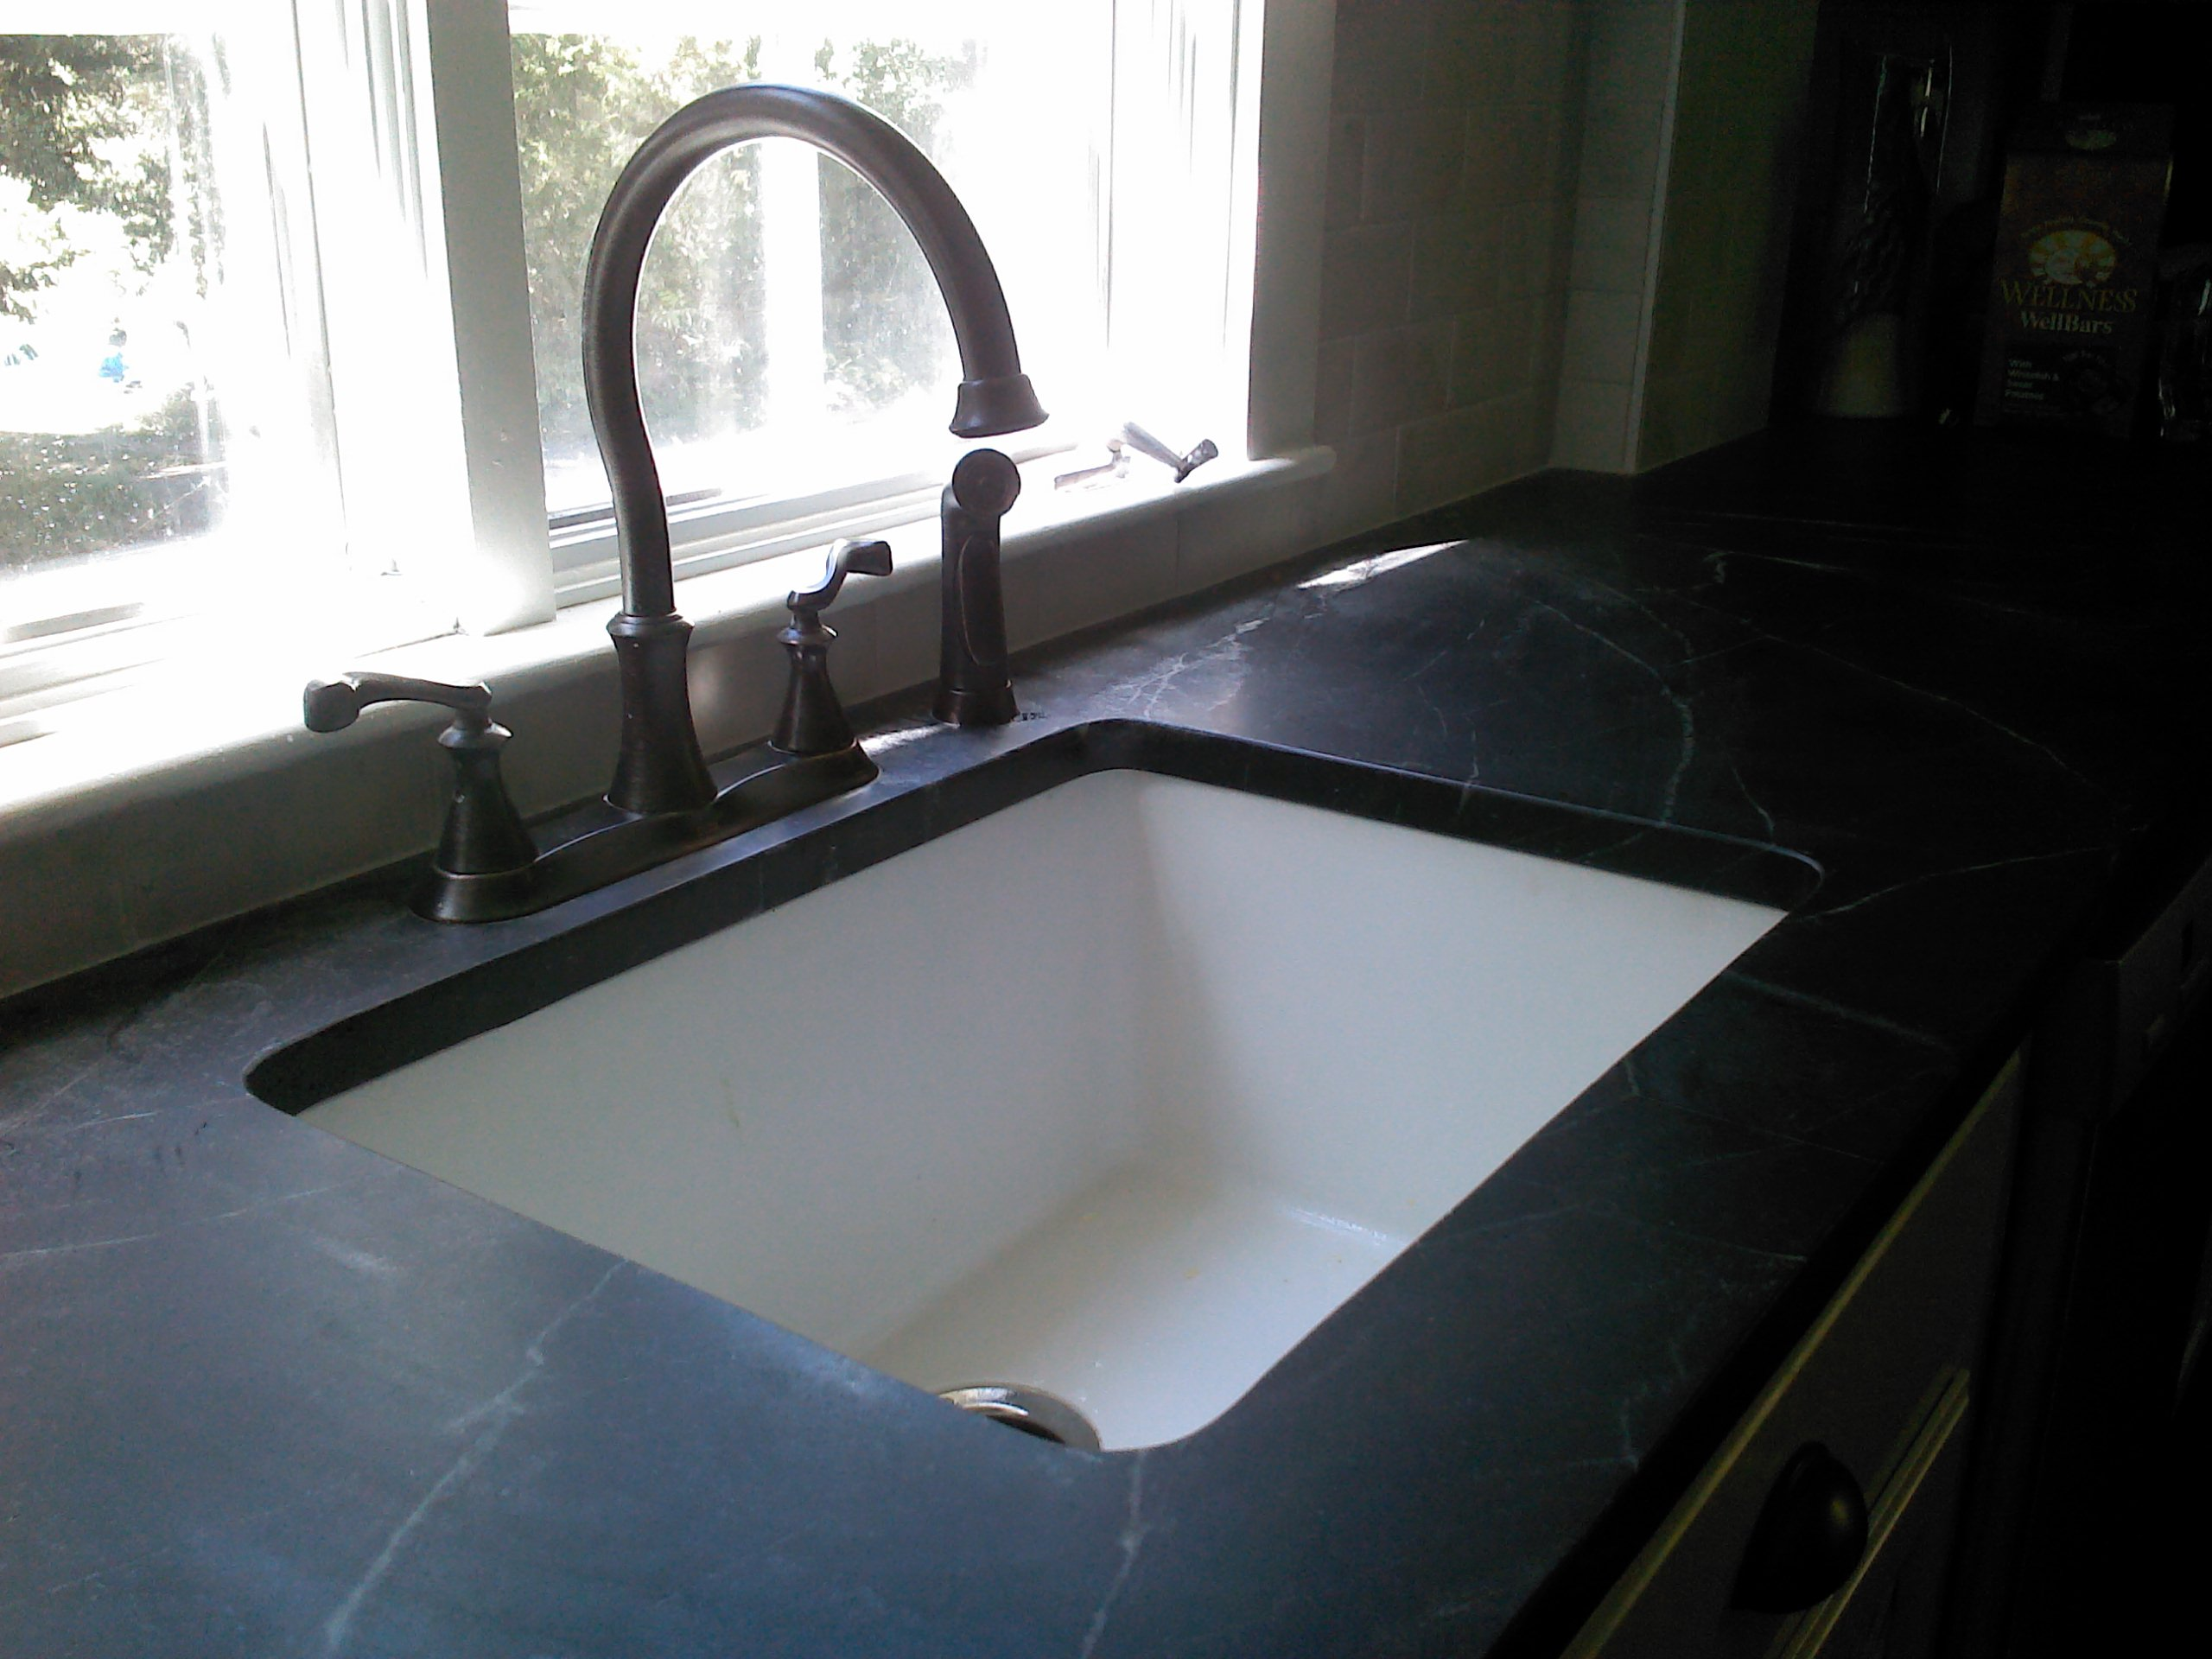 ... Pinterest Soapstone, Soapstone Countertops and Countertops